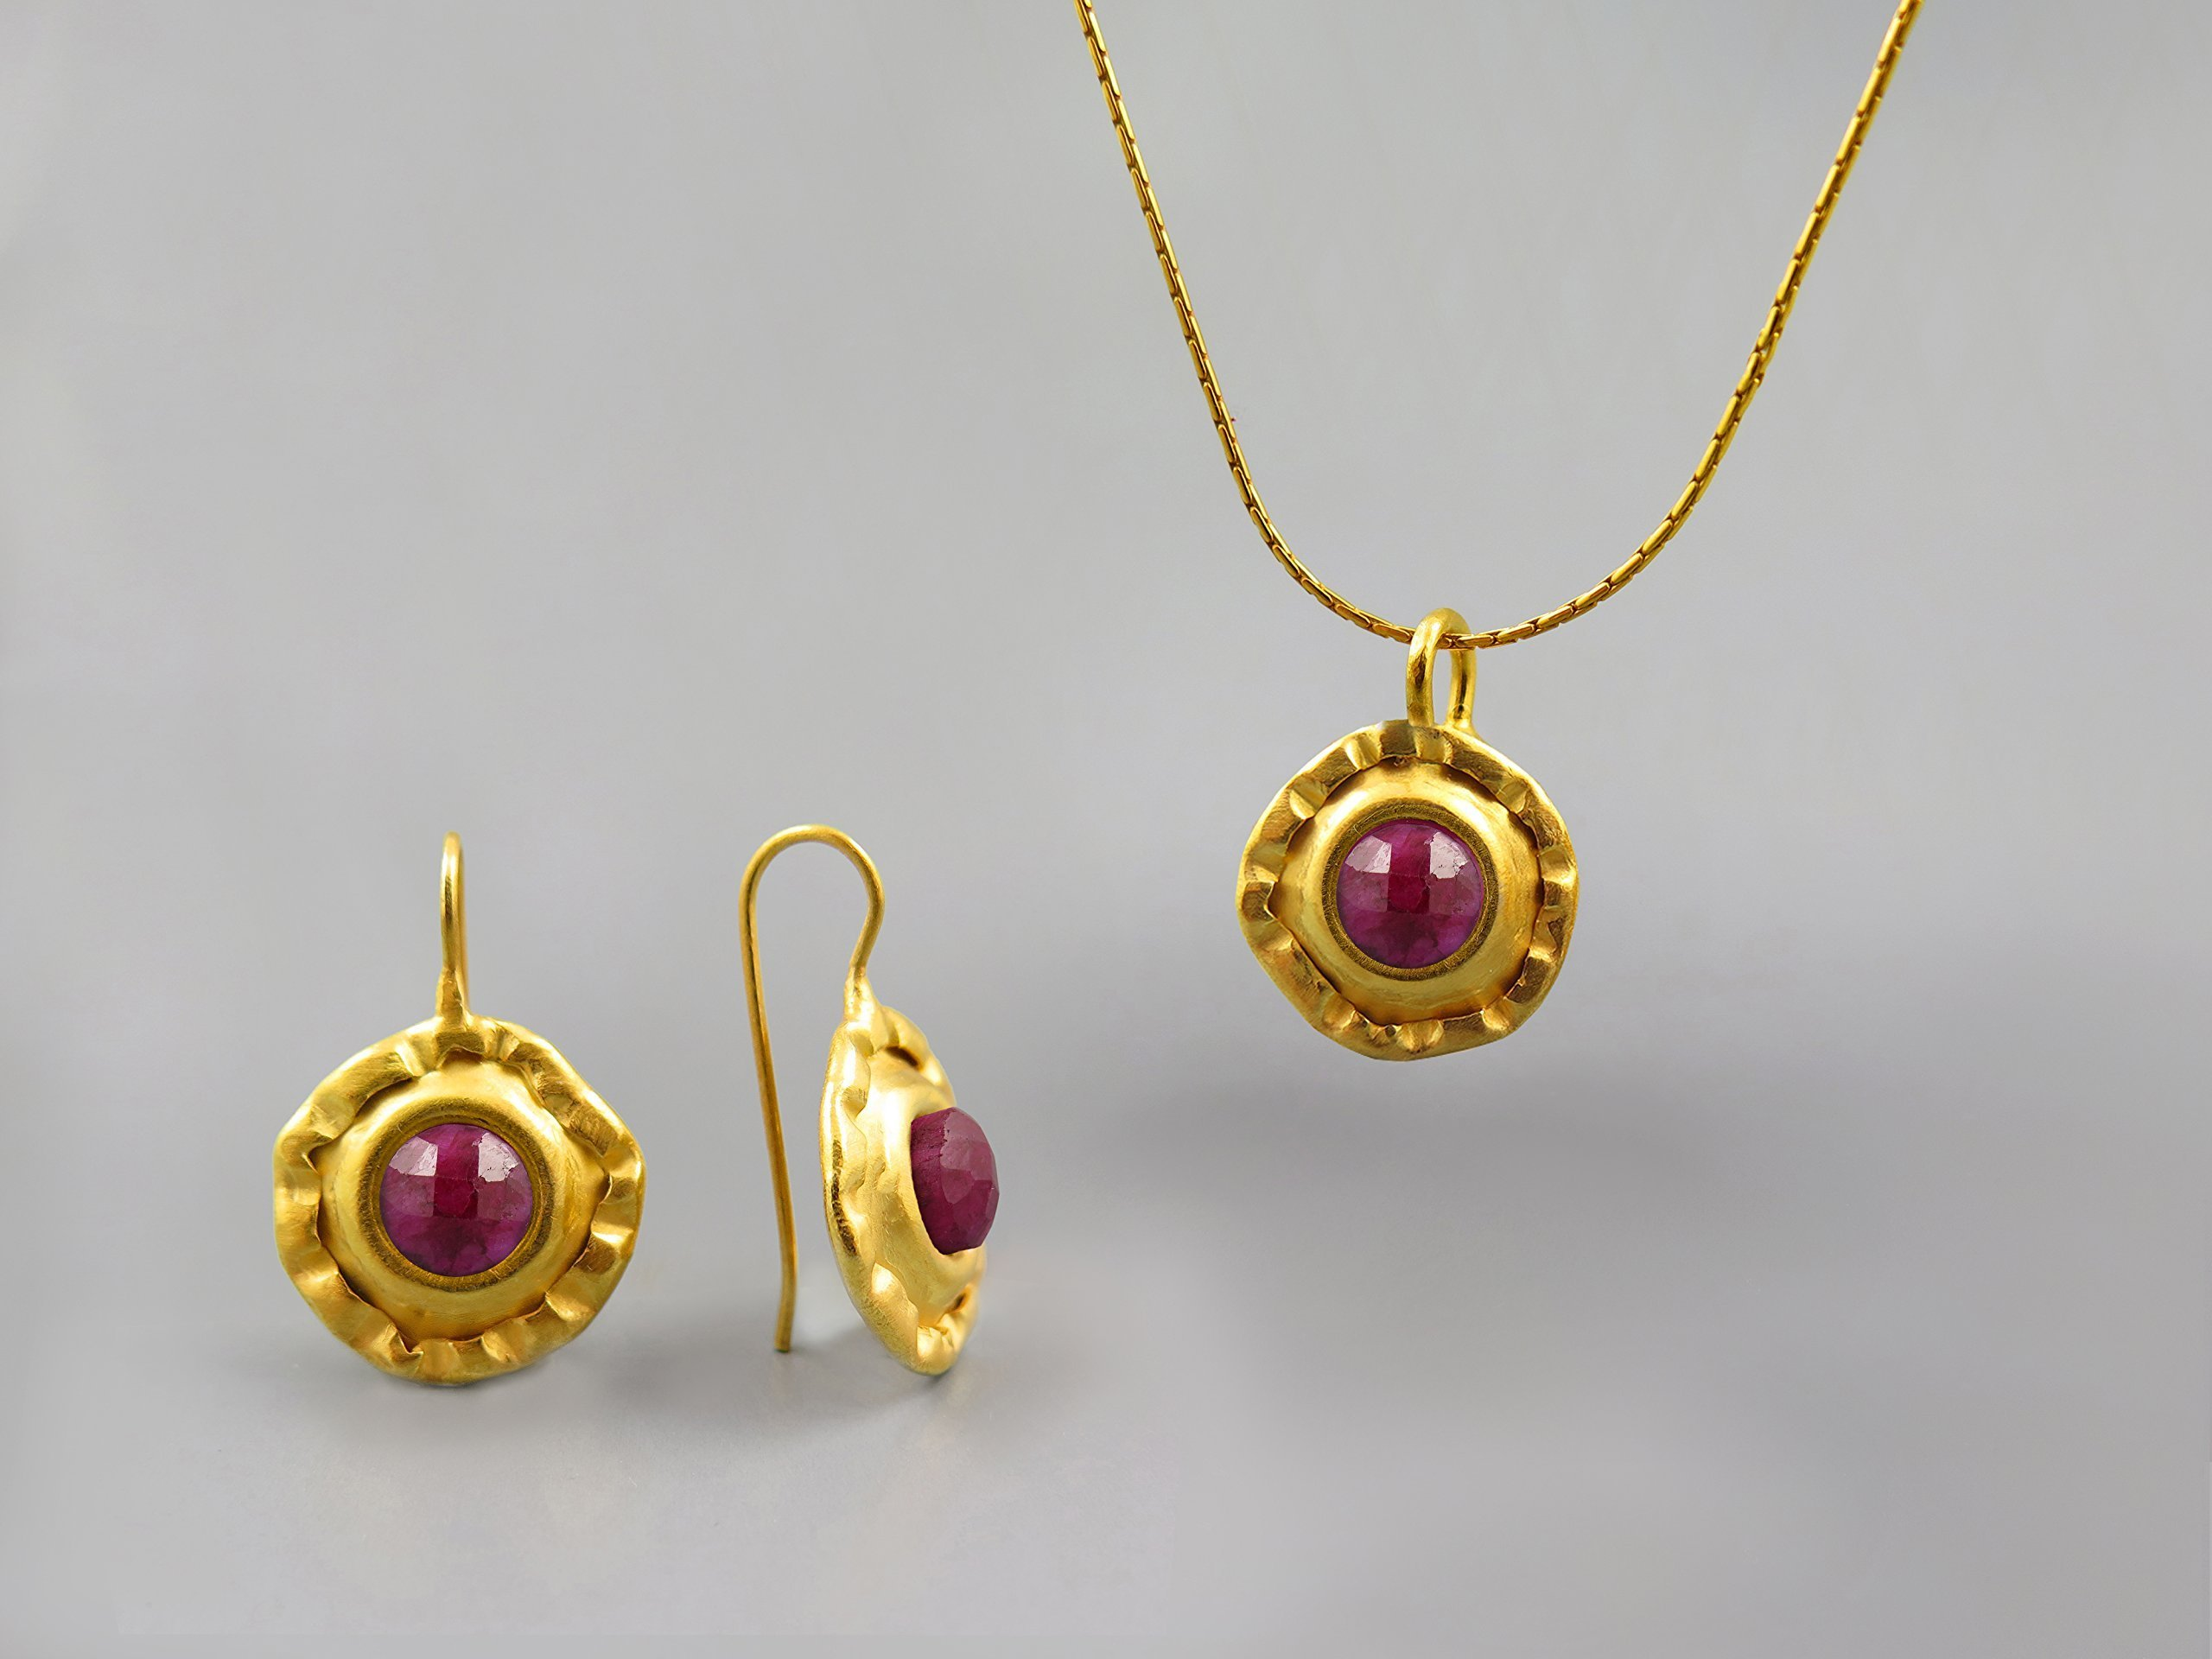 Red Ruby Gemstone Round Jewelry Set For Women 24K Gold Plated July Birthstone Jewelry Ruby Necklace Pendant Earring Set Gift for Women Ruby Jewelry Genuine Natural Stone Jewelry Unique Gift For Her